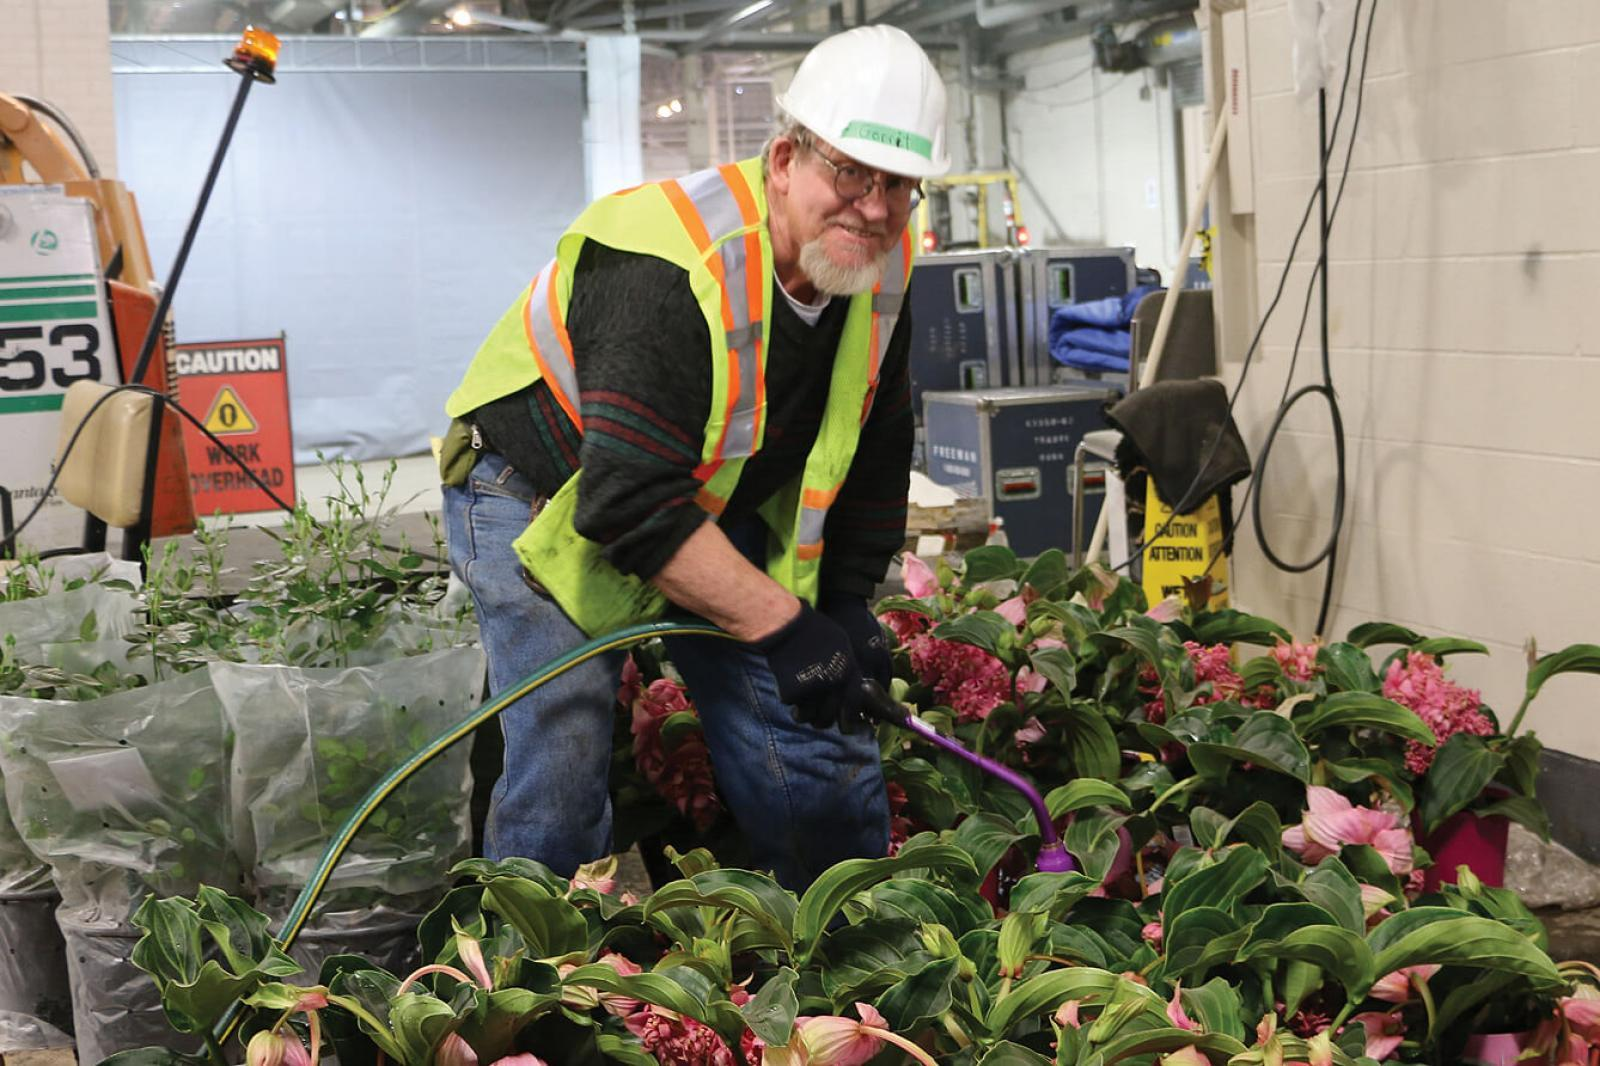 As seen by the long list of names on this page, it takes many volunteers, such as Gerrit Tervrugt to make Canada Blooms a success.